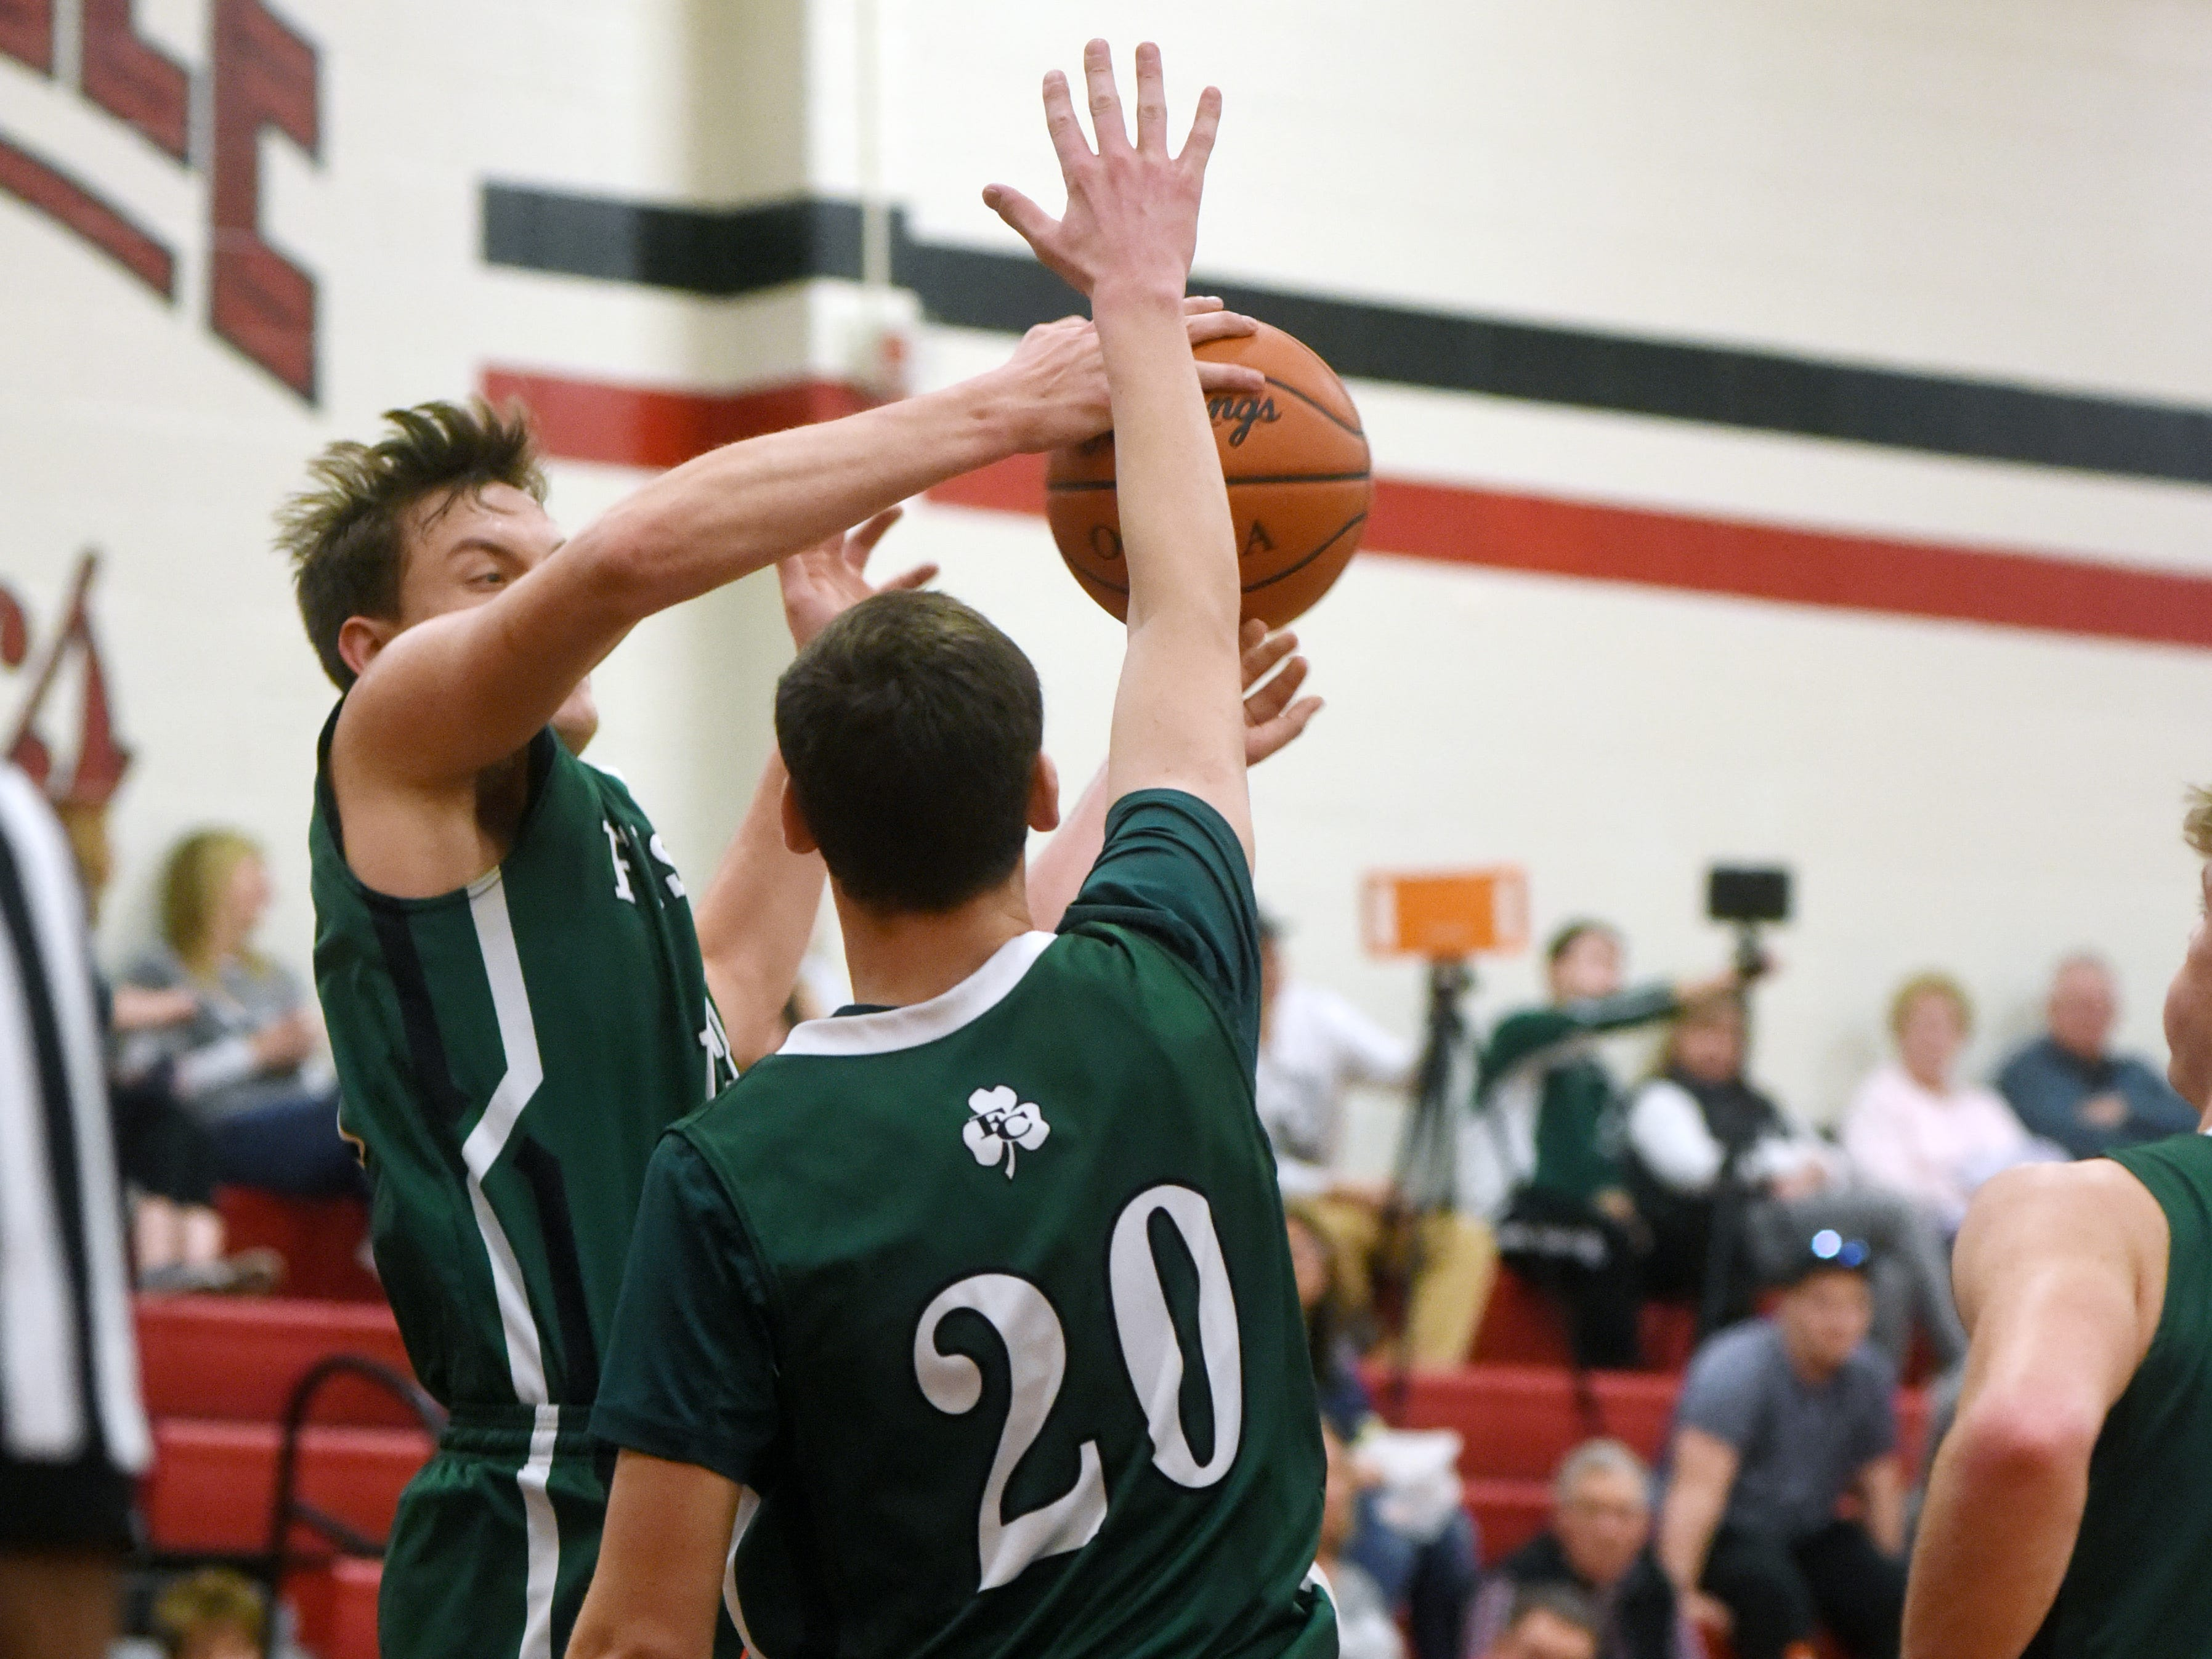 Daniel Turner, of Fisher Catholic, blocks a shot against Crooksville on Monday night in McLuney.